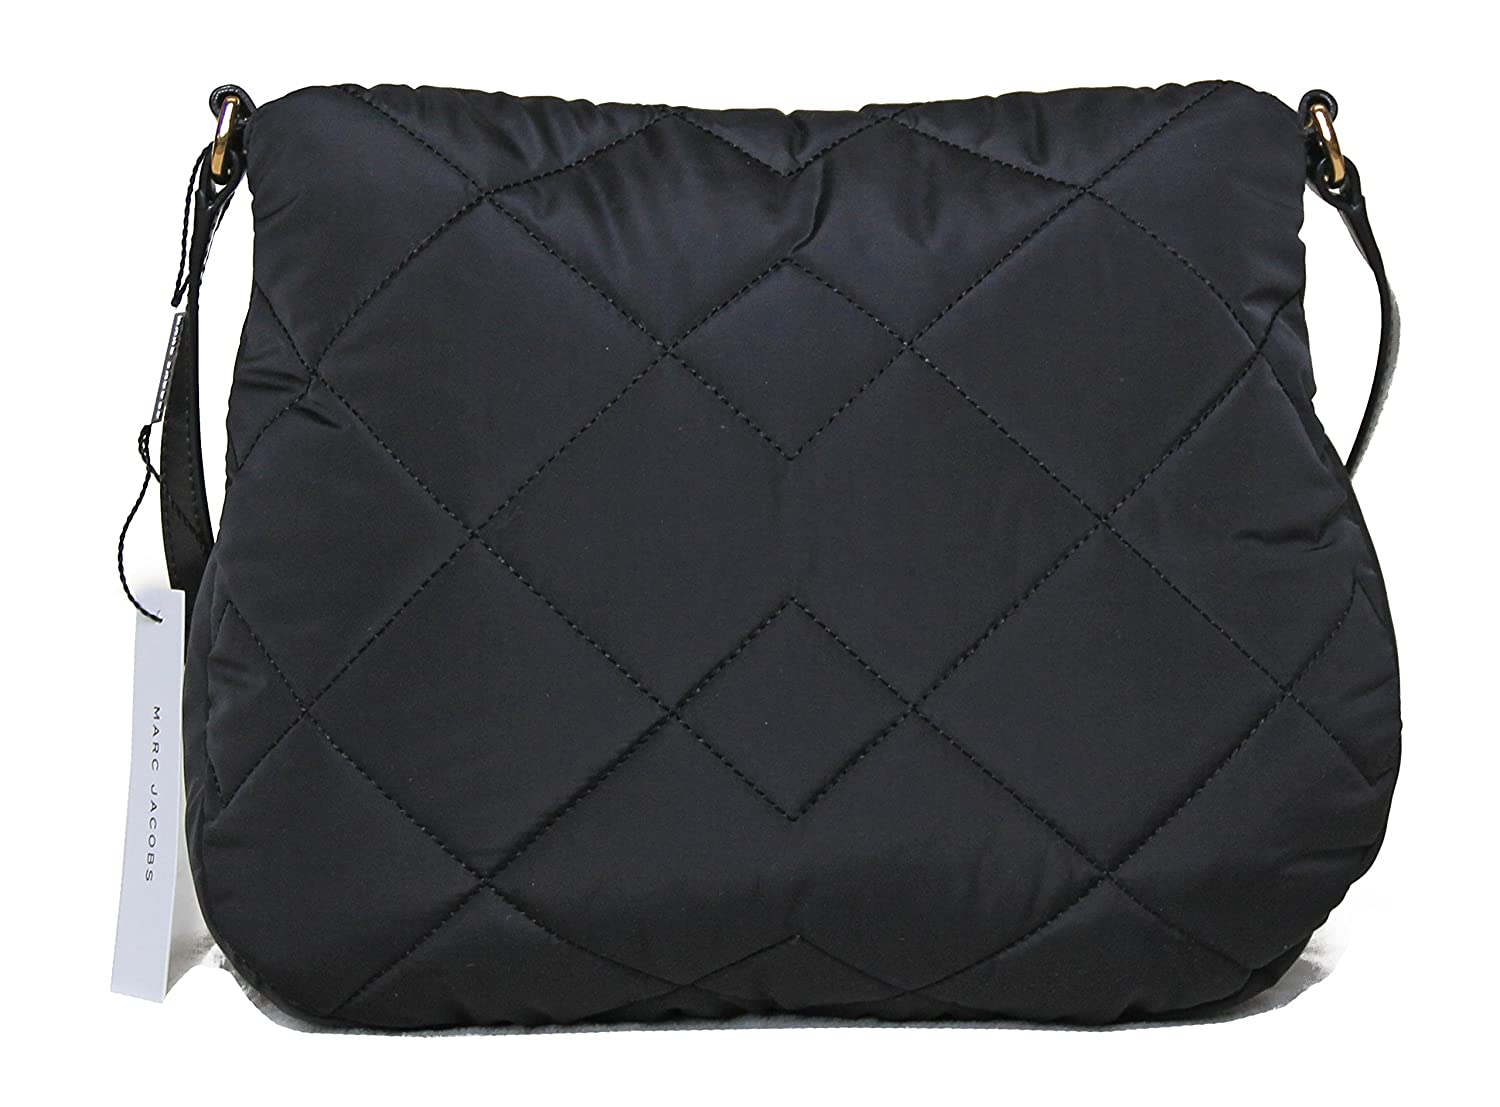 101b4dca08e2 Marc by Marc Jacobs Natasha Quilted Nylon Crossbody Handbag (Black)   Amazon.ca  Shoes   Handbags